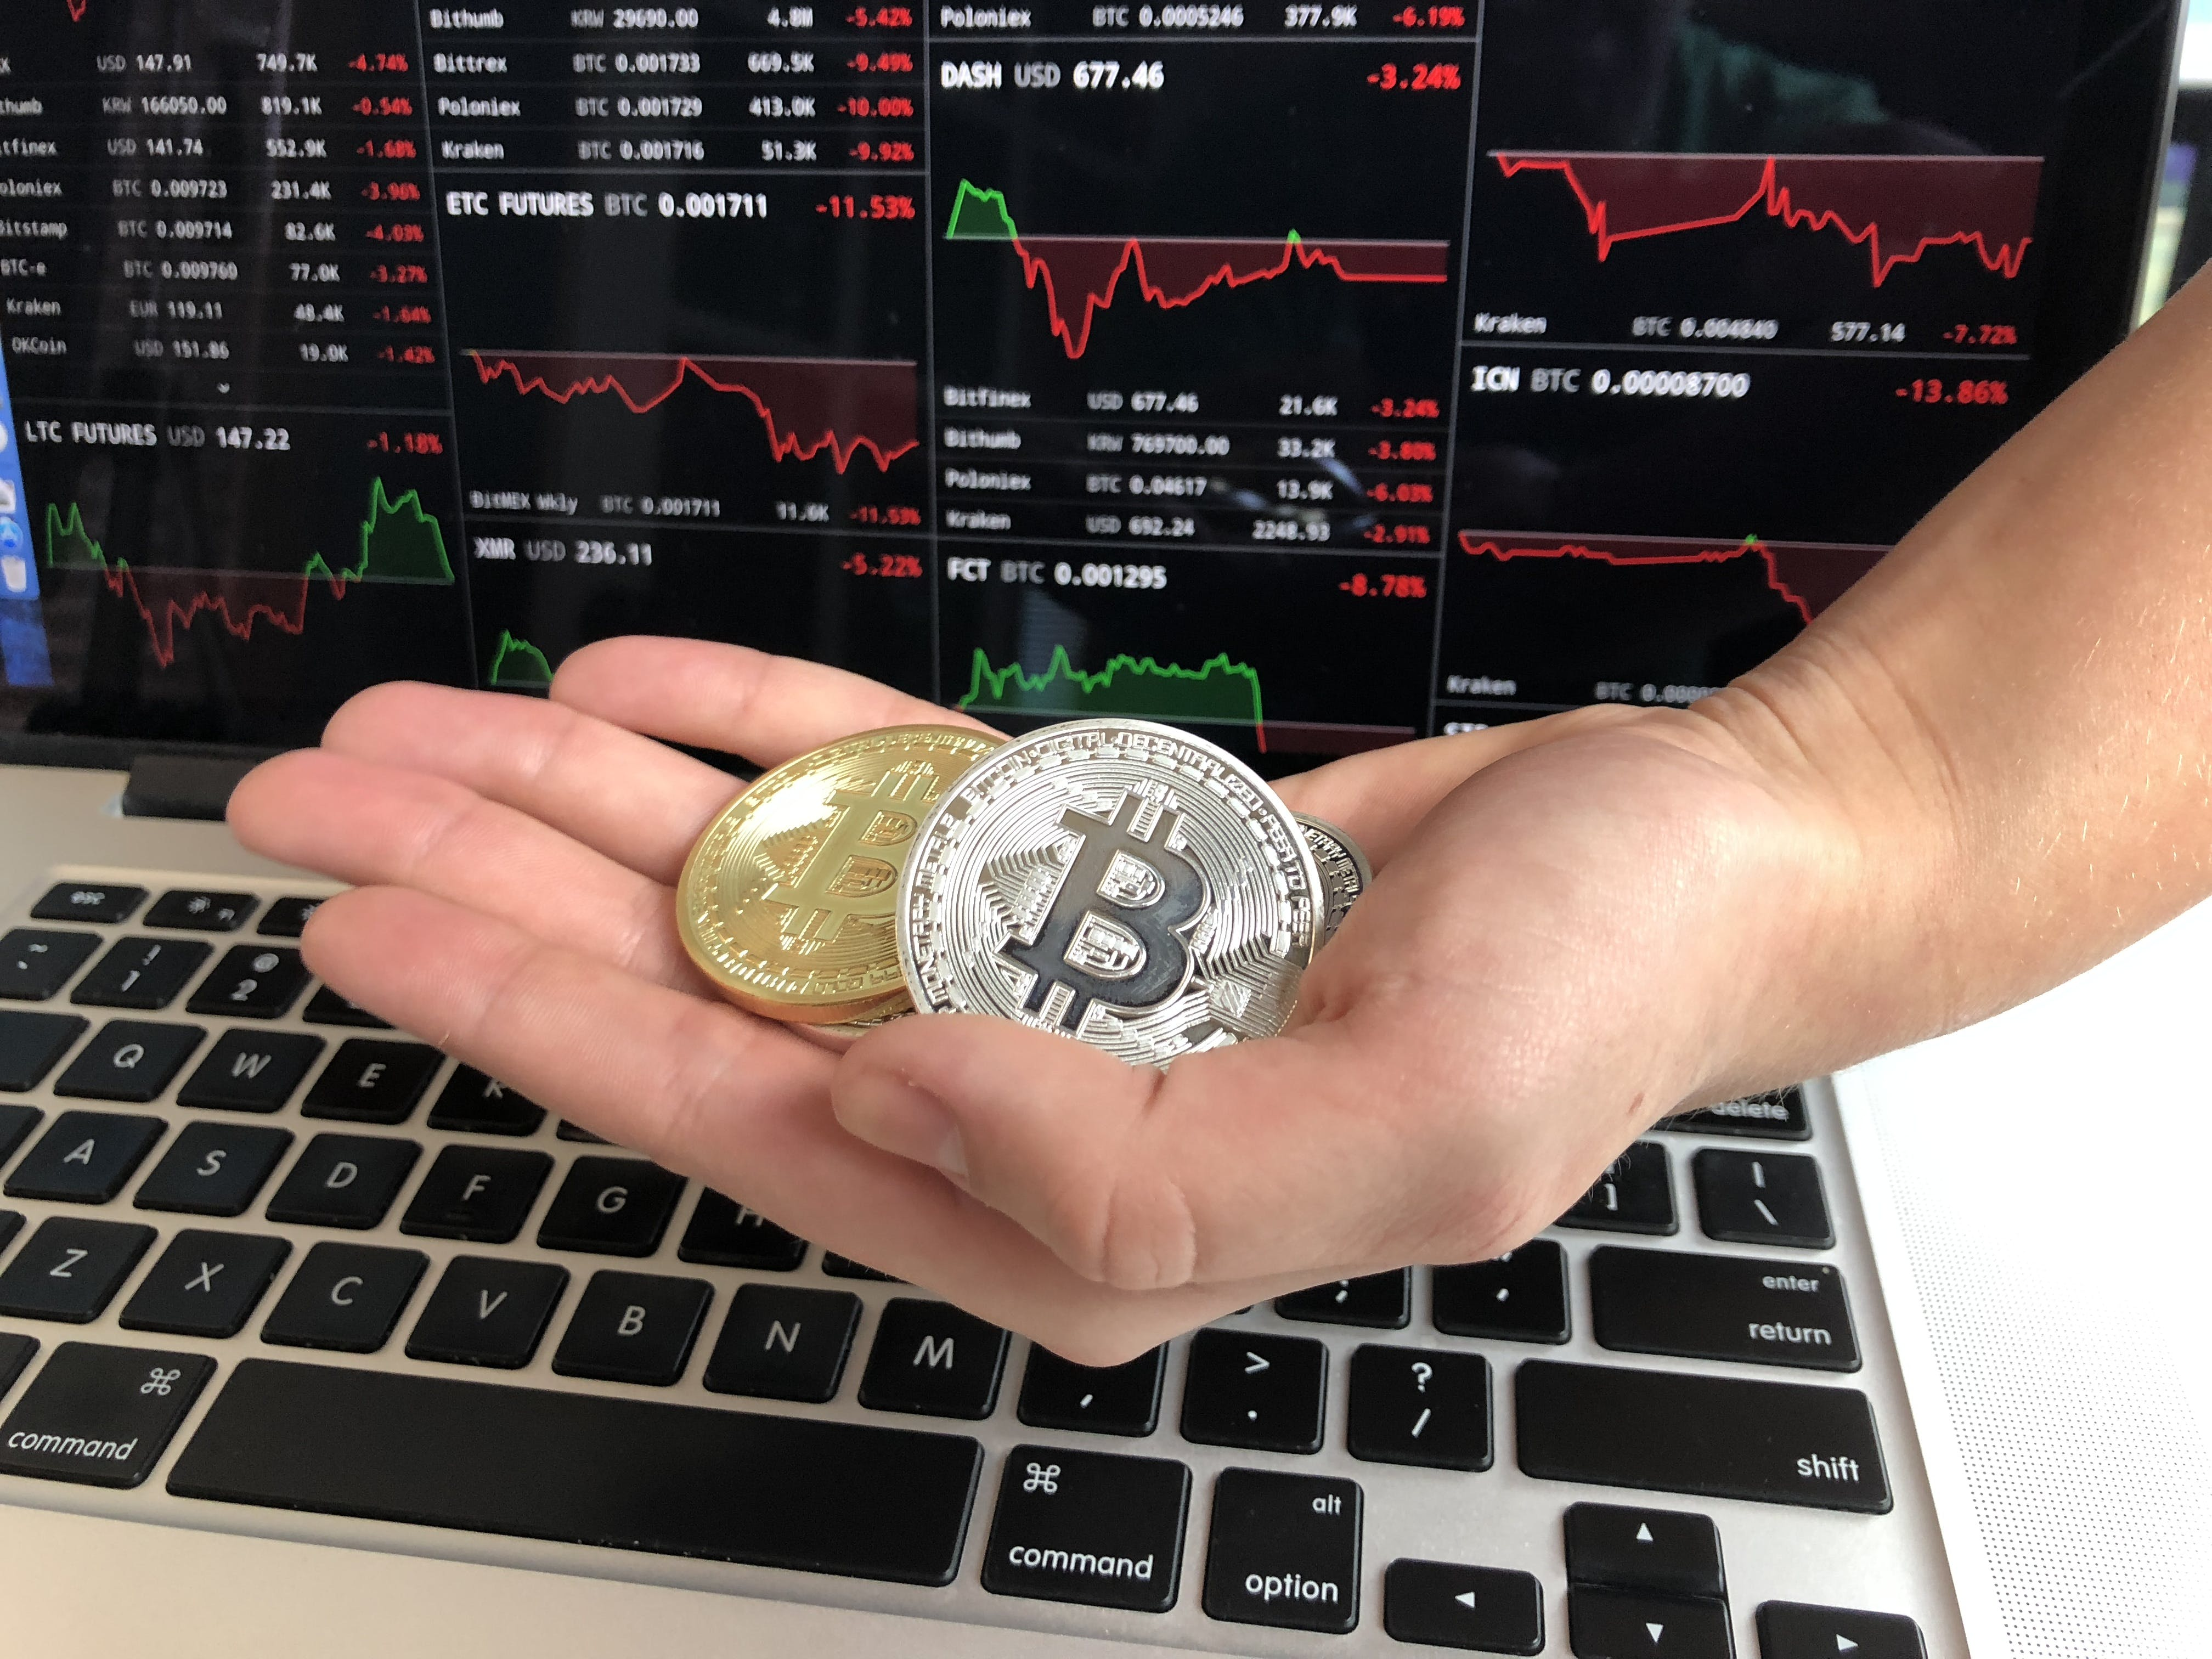 Free stock photo of Hand holding bitcoins